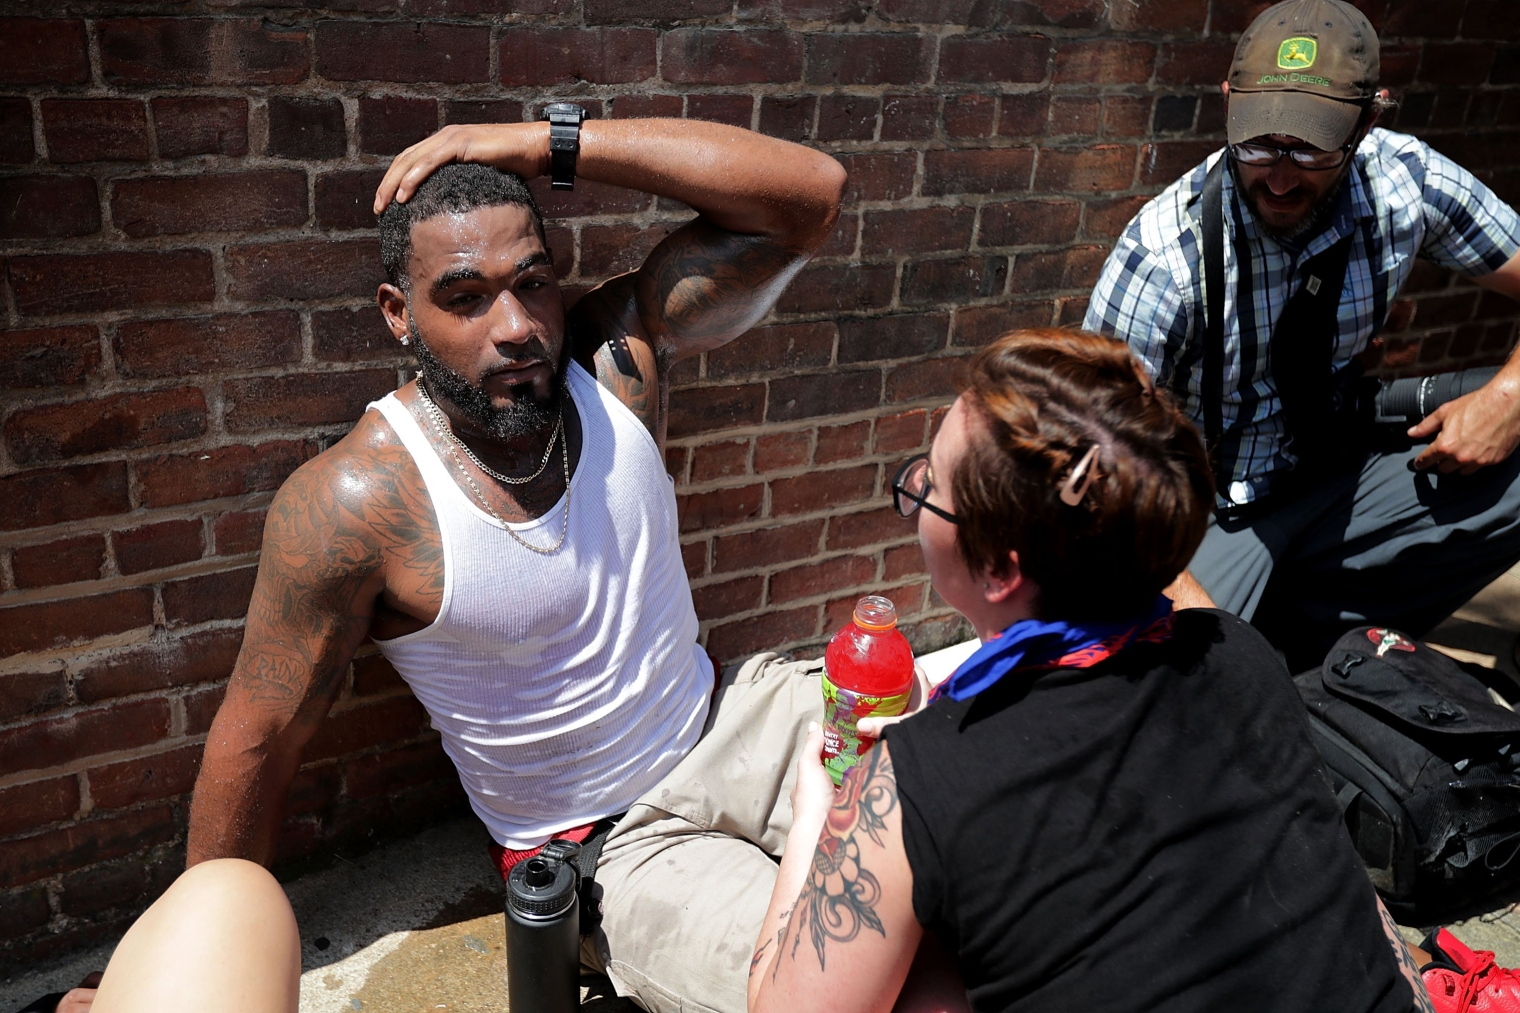 Rescue workers and volunteer medics tend to people who were injured when a car plowed through a crowd of counter-demonstrators marching through the downtown shopping district in Charlottesville, Va., on Aug. 12, 2017.